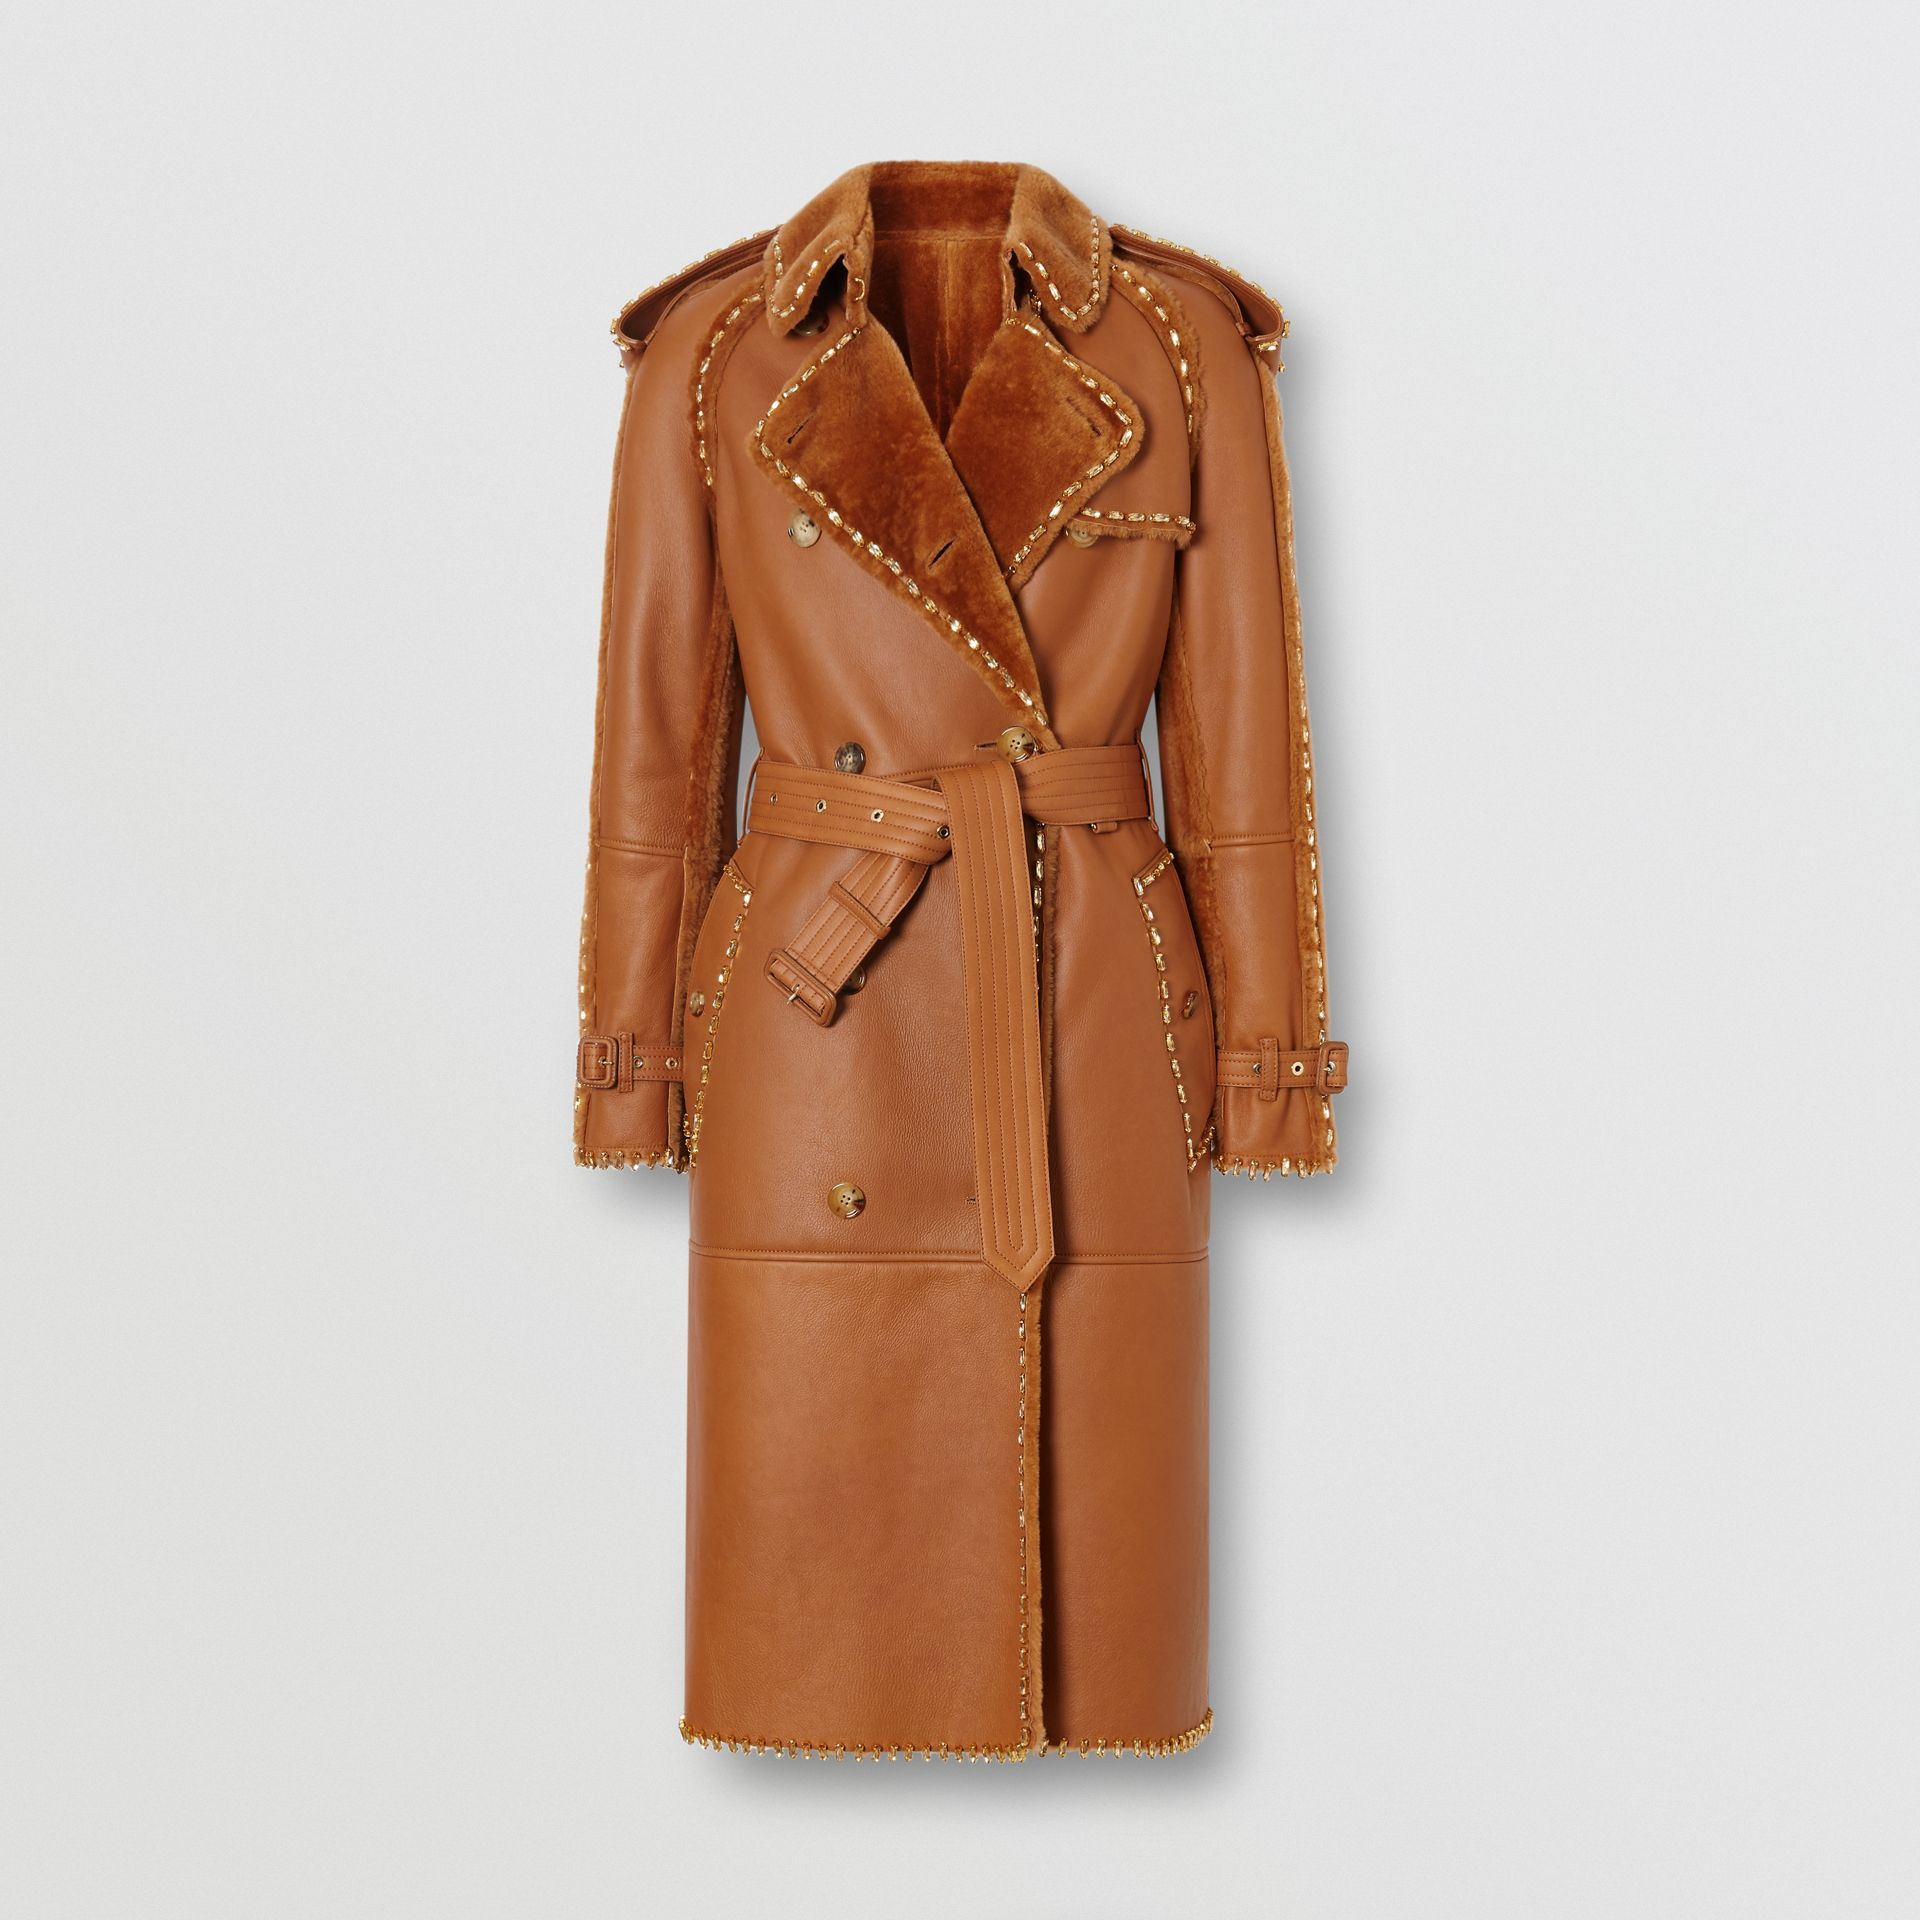 Embellished Shearling Trench Coat in Warm Camel - Women | Burberry - gallery image 3